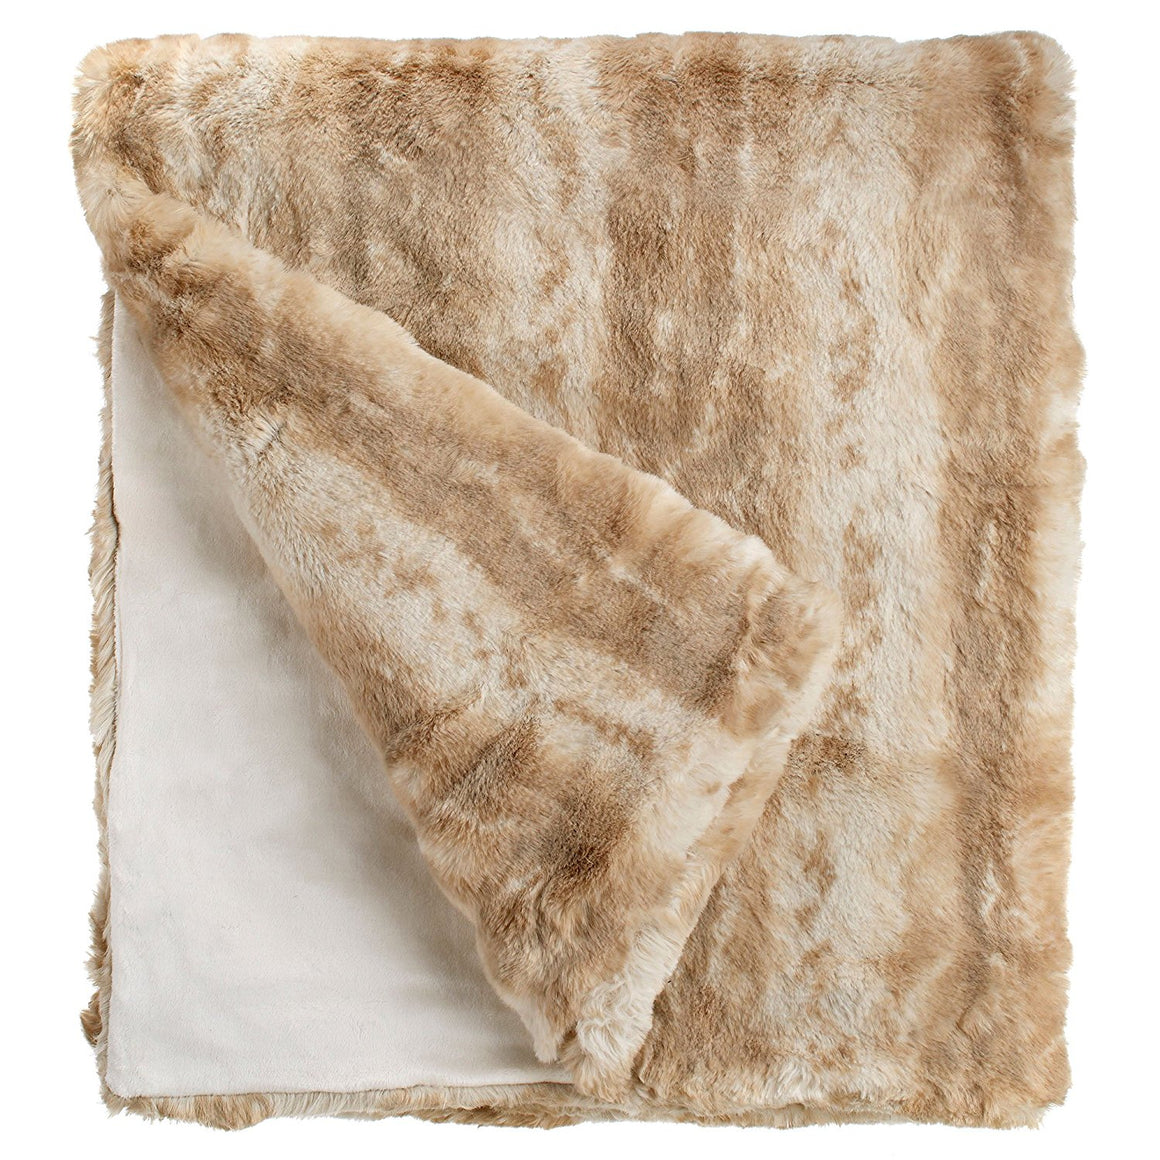 Blonde Mink Couture Faux Fur Throw